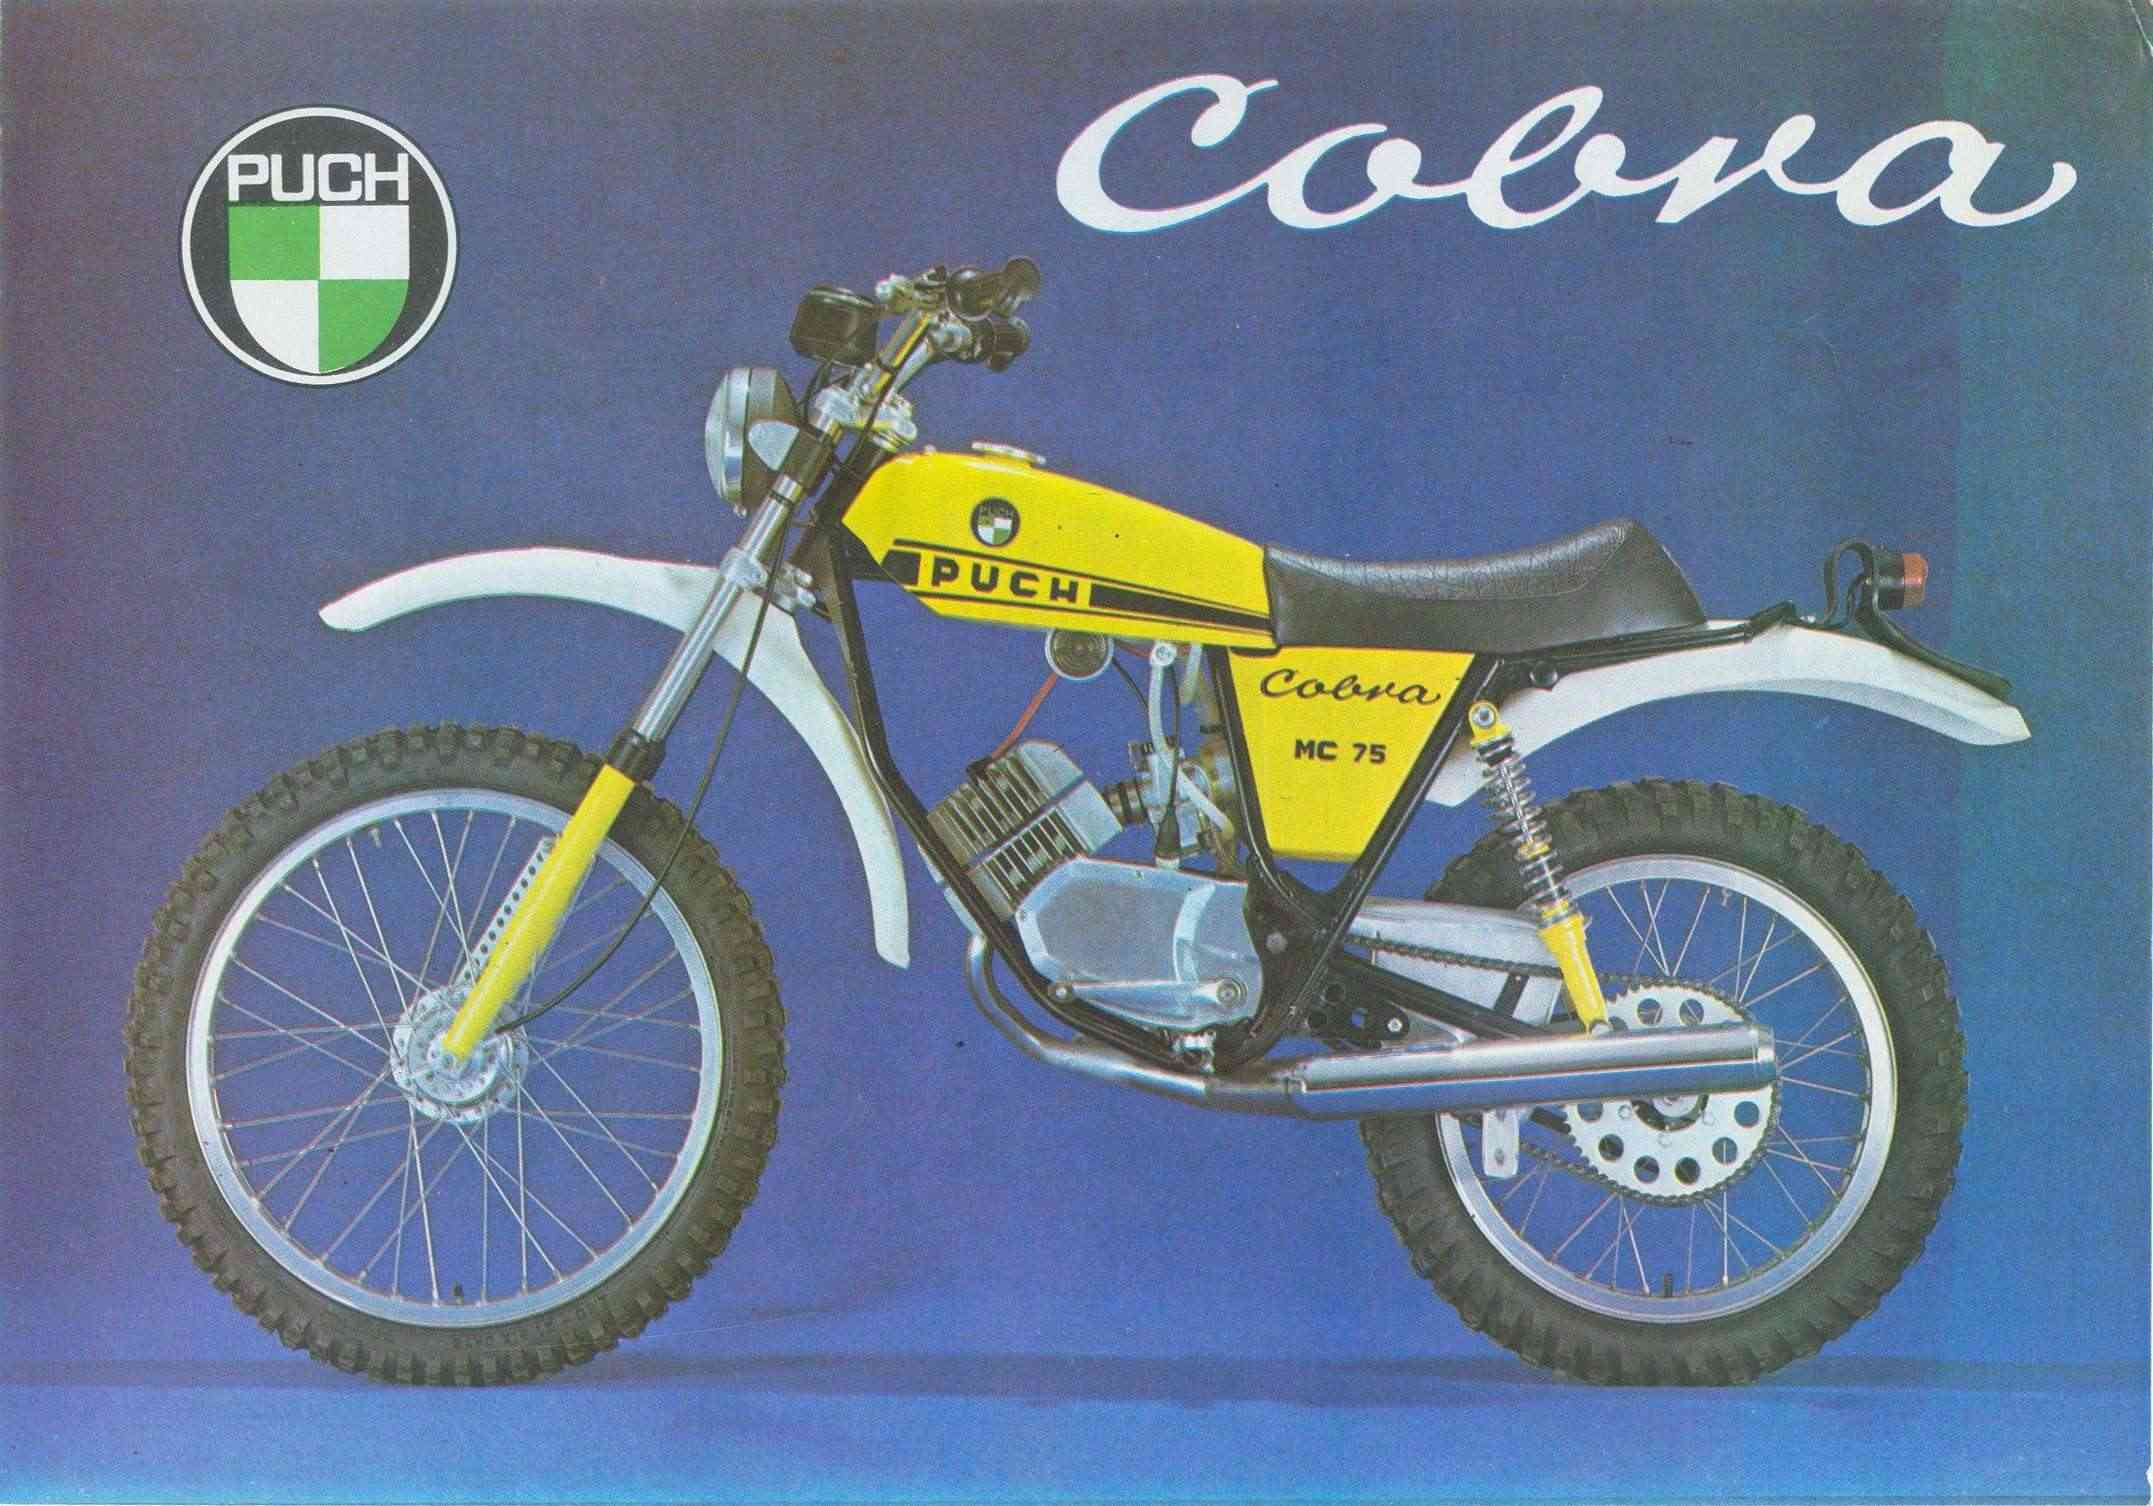 Puch 125 GS images #121462